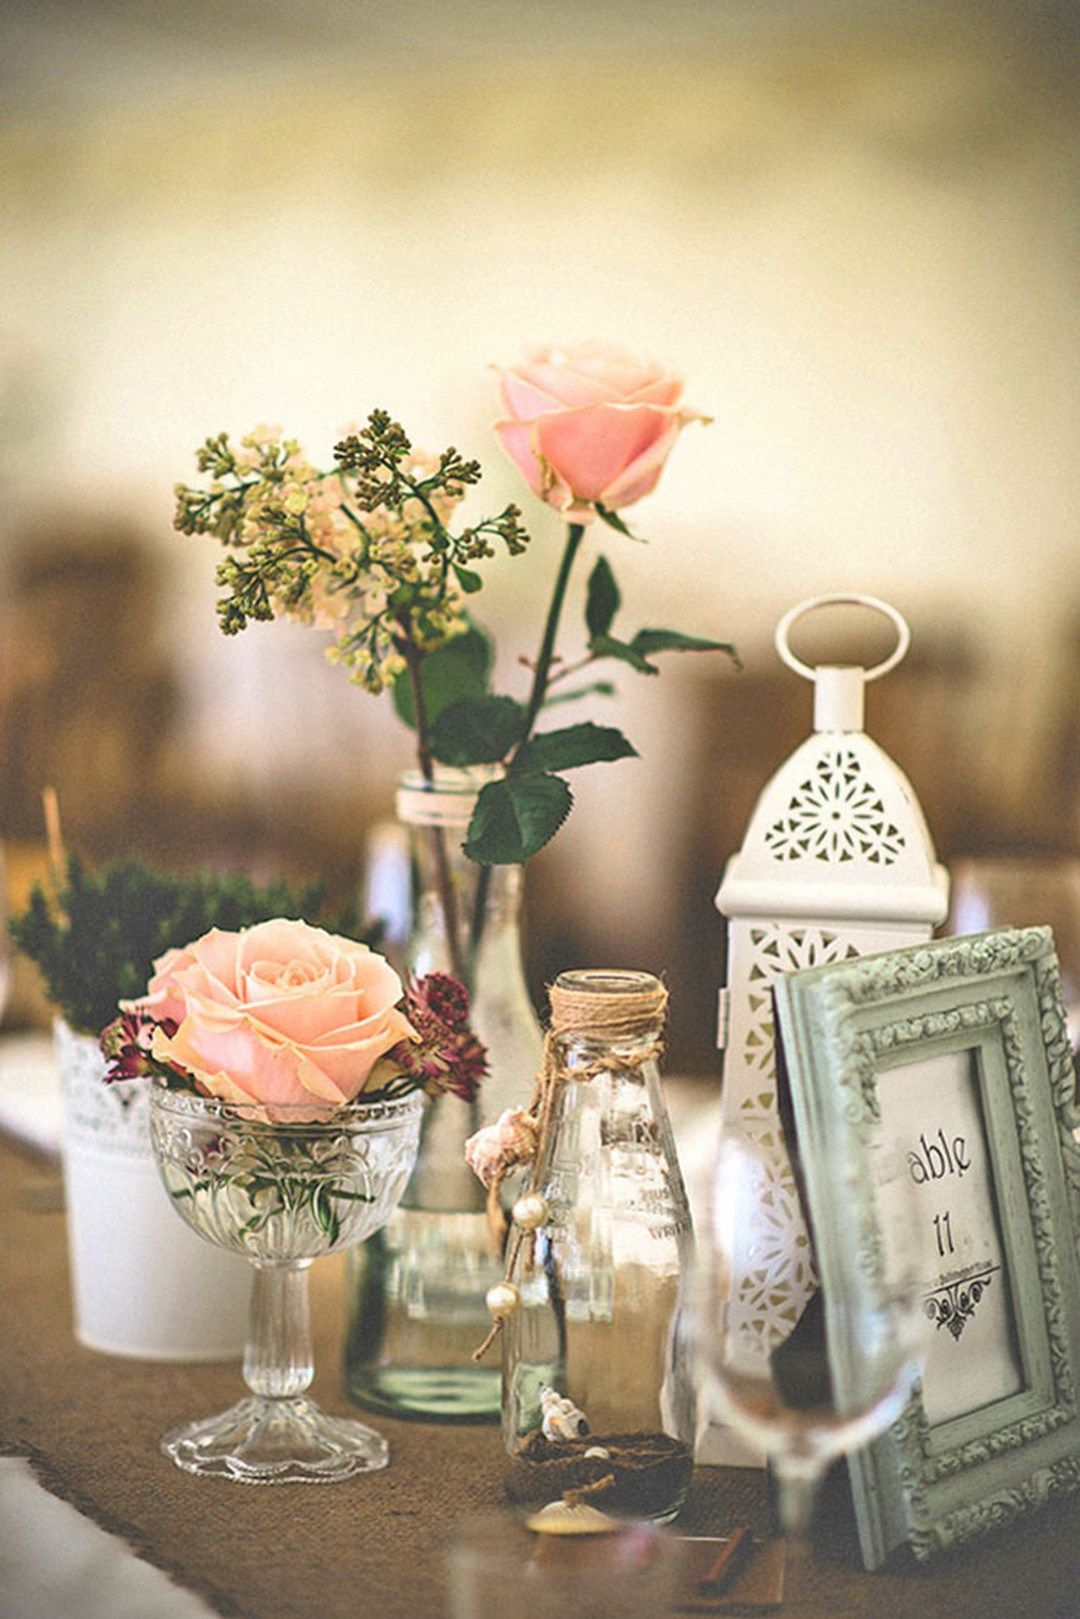 DIY Wedding Ideas 99 Ways To Save Budget For Your Big Day (89)